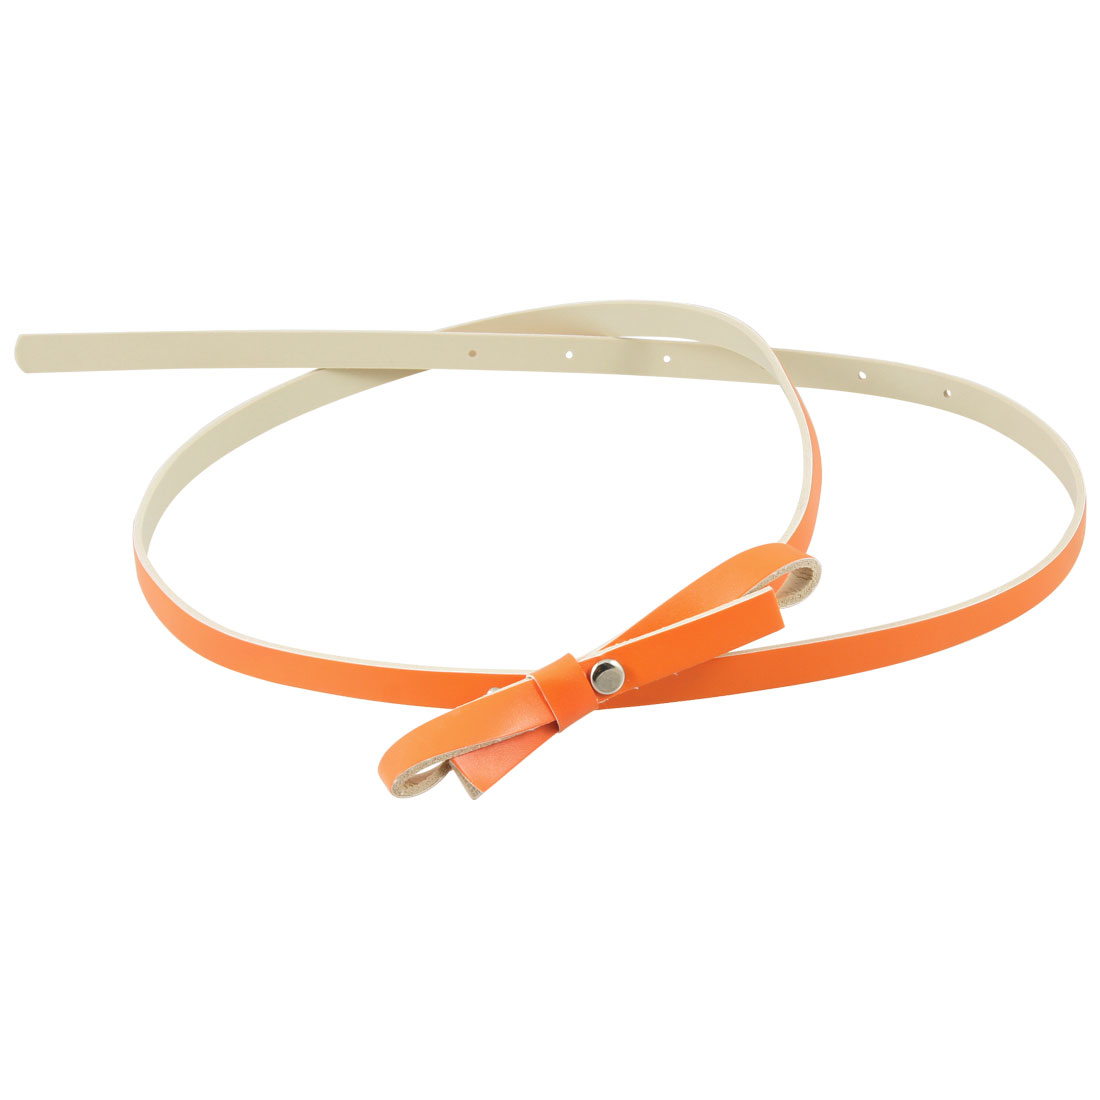 Orange Butterfly Bowtie Decoration Faux Leather Waist Belt for Women